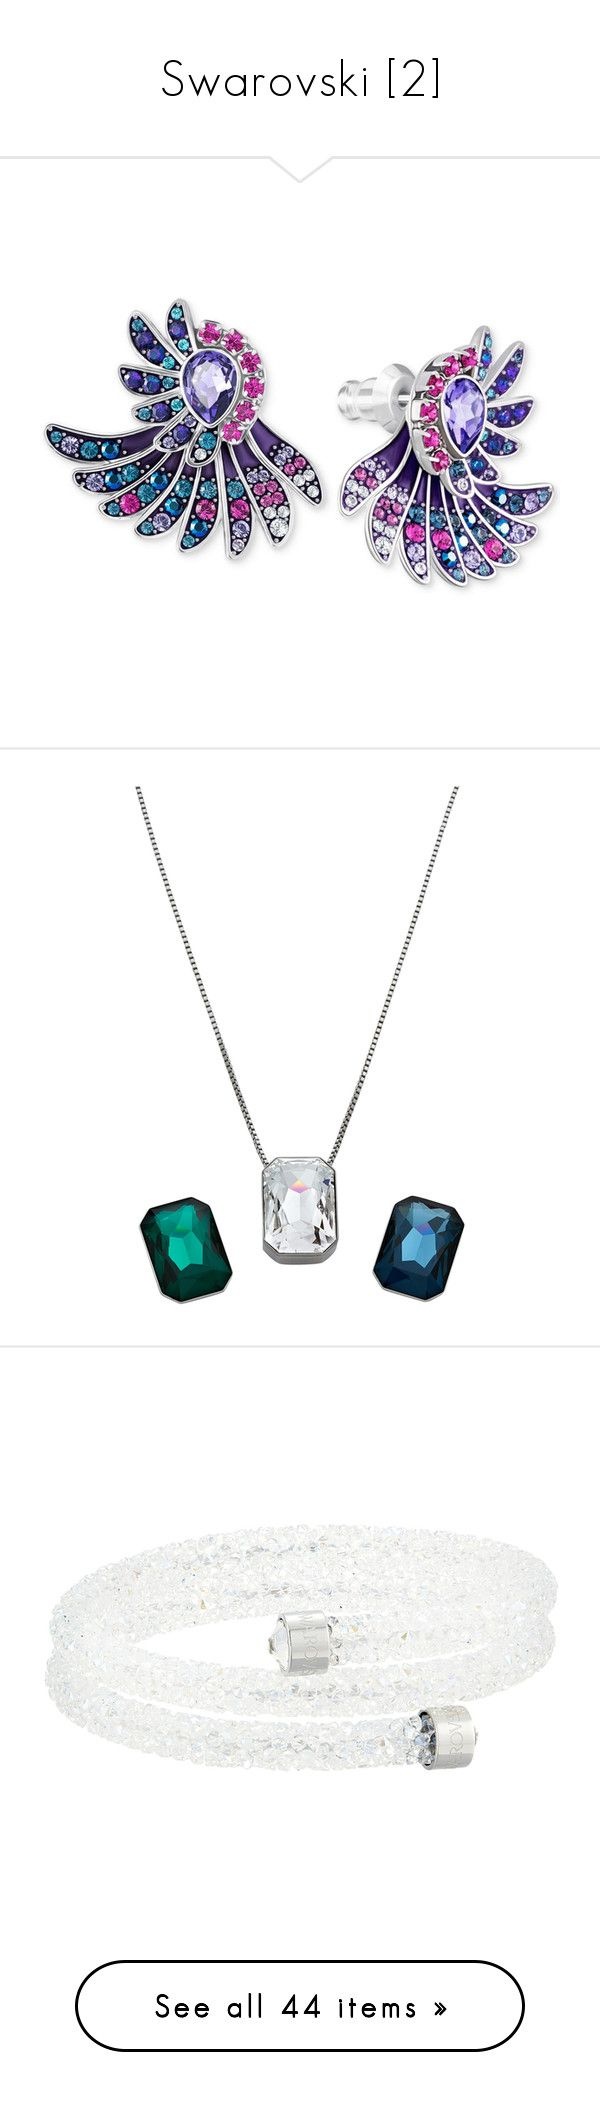 """""""Swarovski [2]"""" by trickpink ❤ liked on Polyvore featuring jewelry, earrings, multi, stud earrings, multicolor earrings, multi color earrings, silvertone earrings, mixed metal earrings, necklaces and white"""